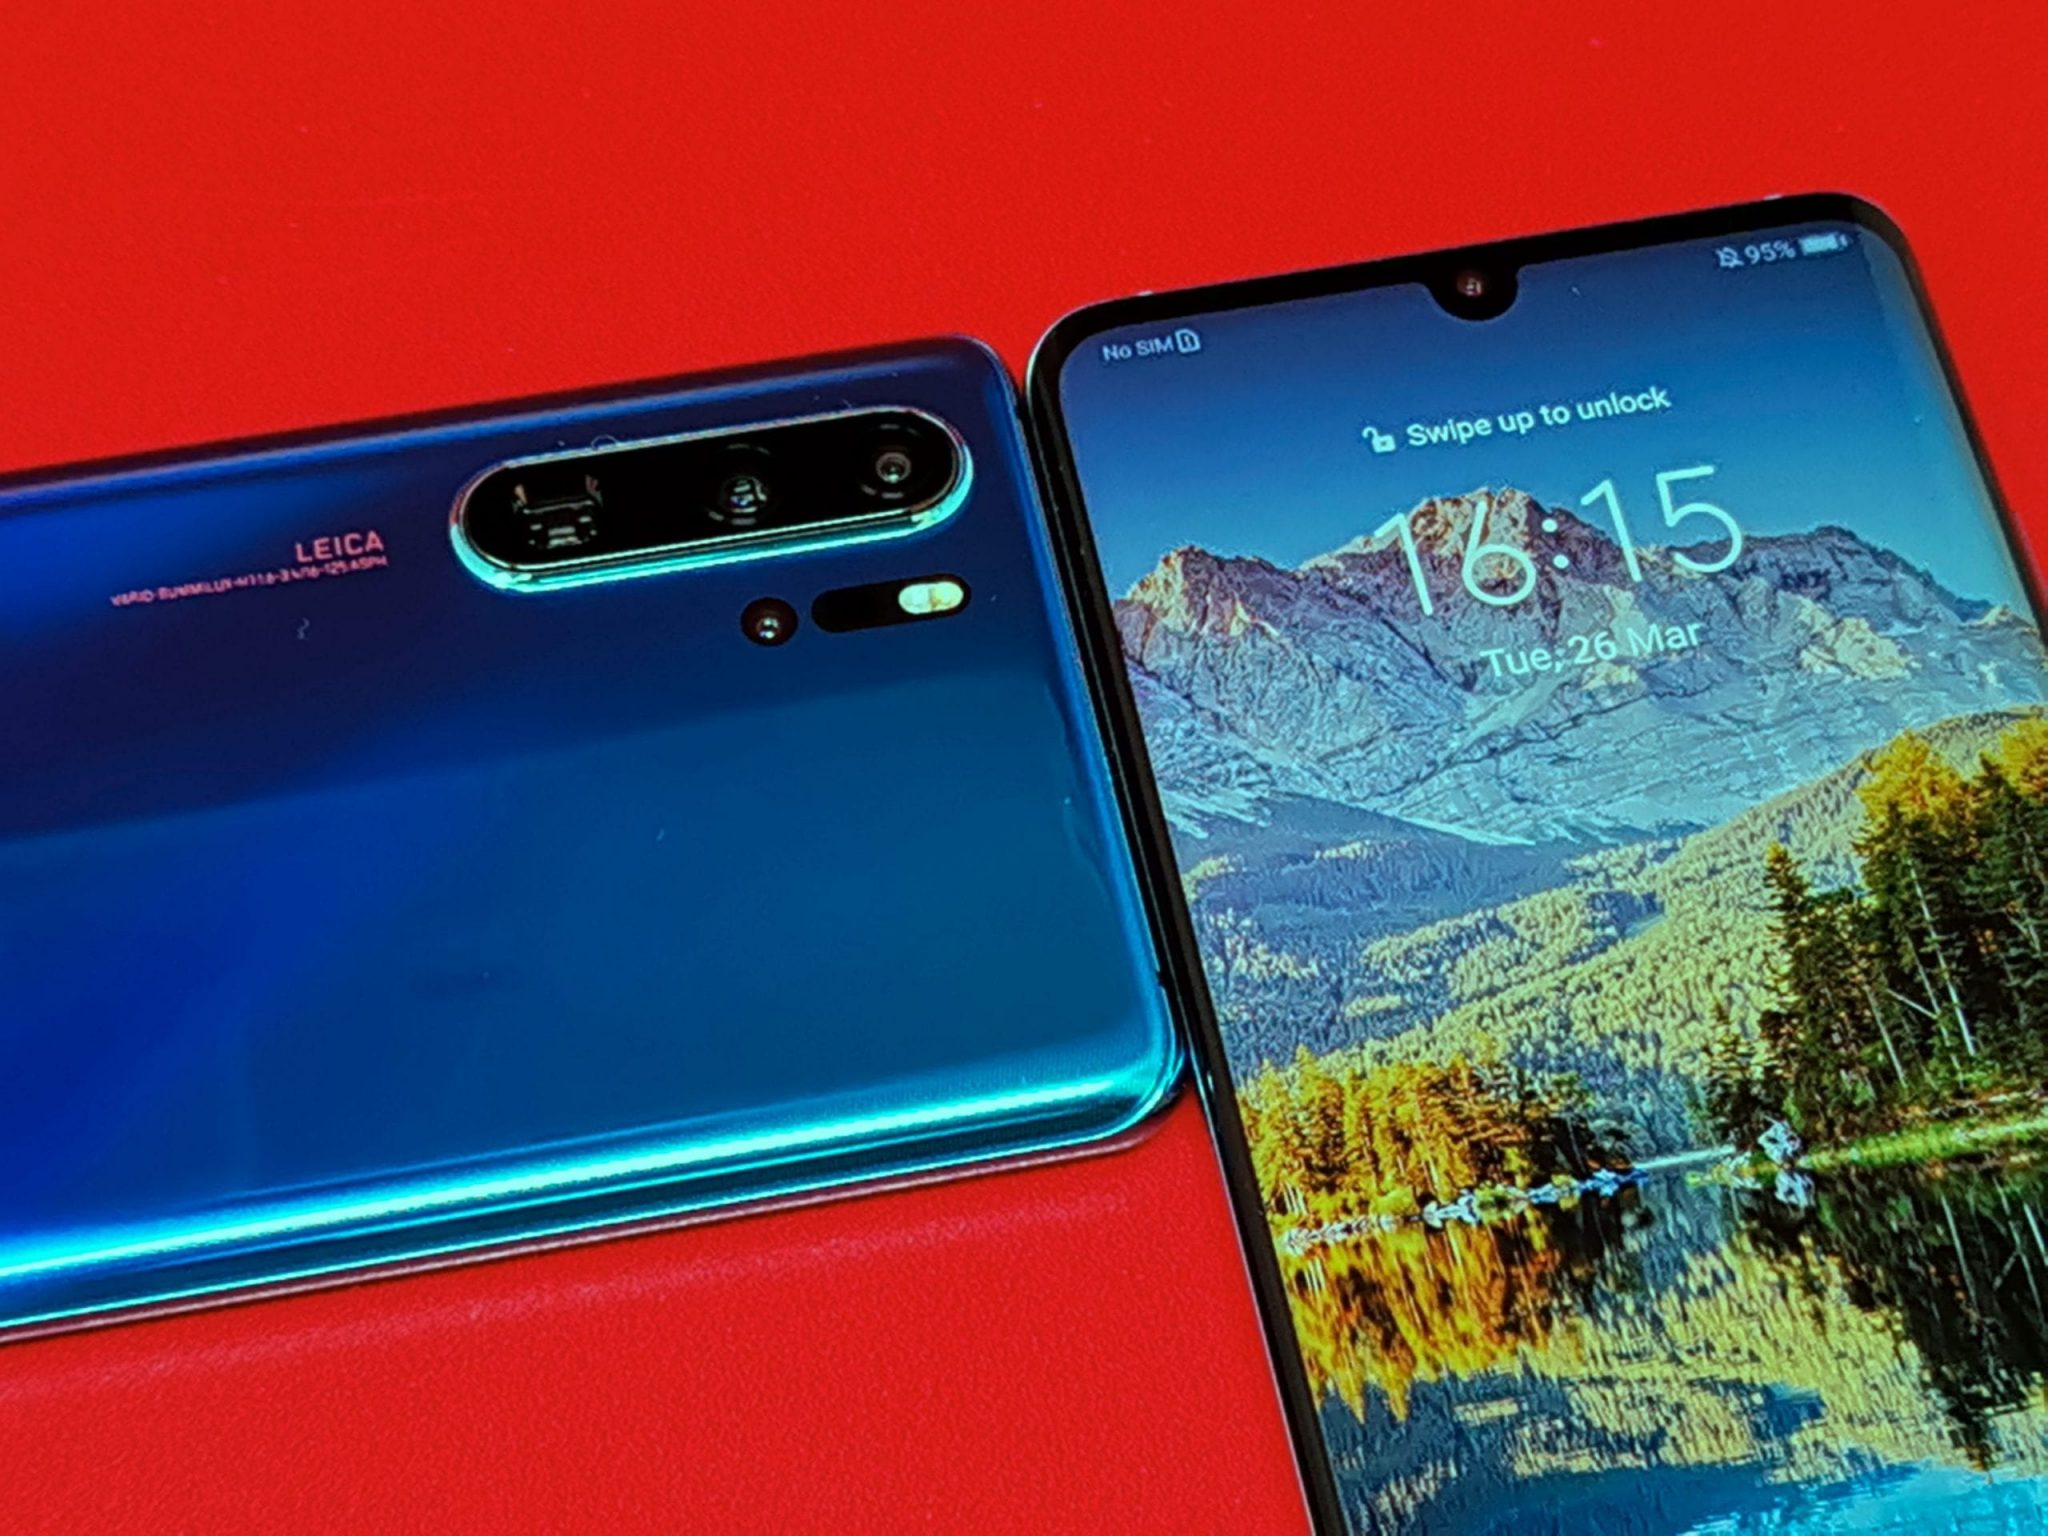 Huawei P30 Pro Hands-On: Huawei's claim of rewriting the